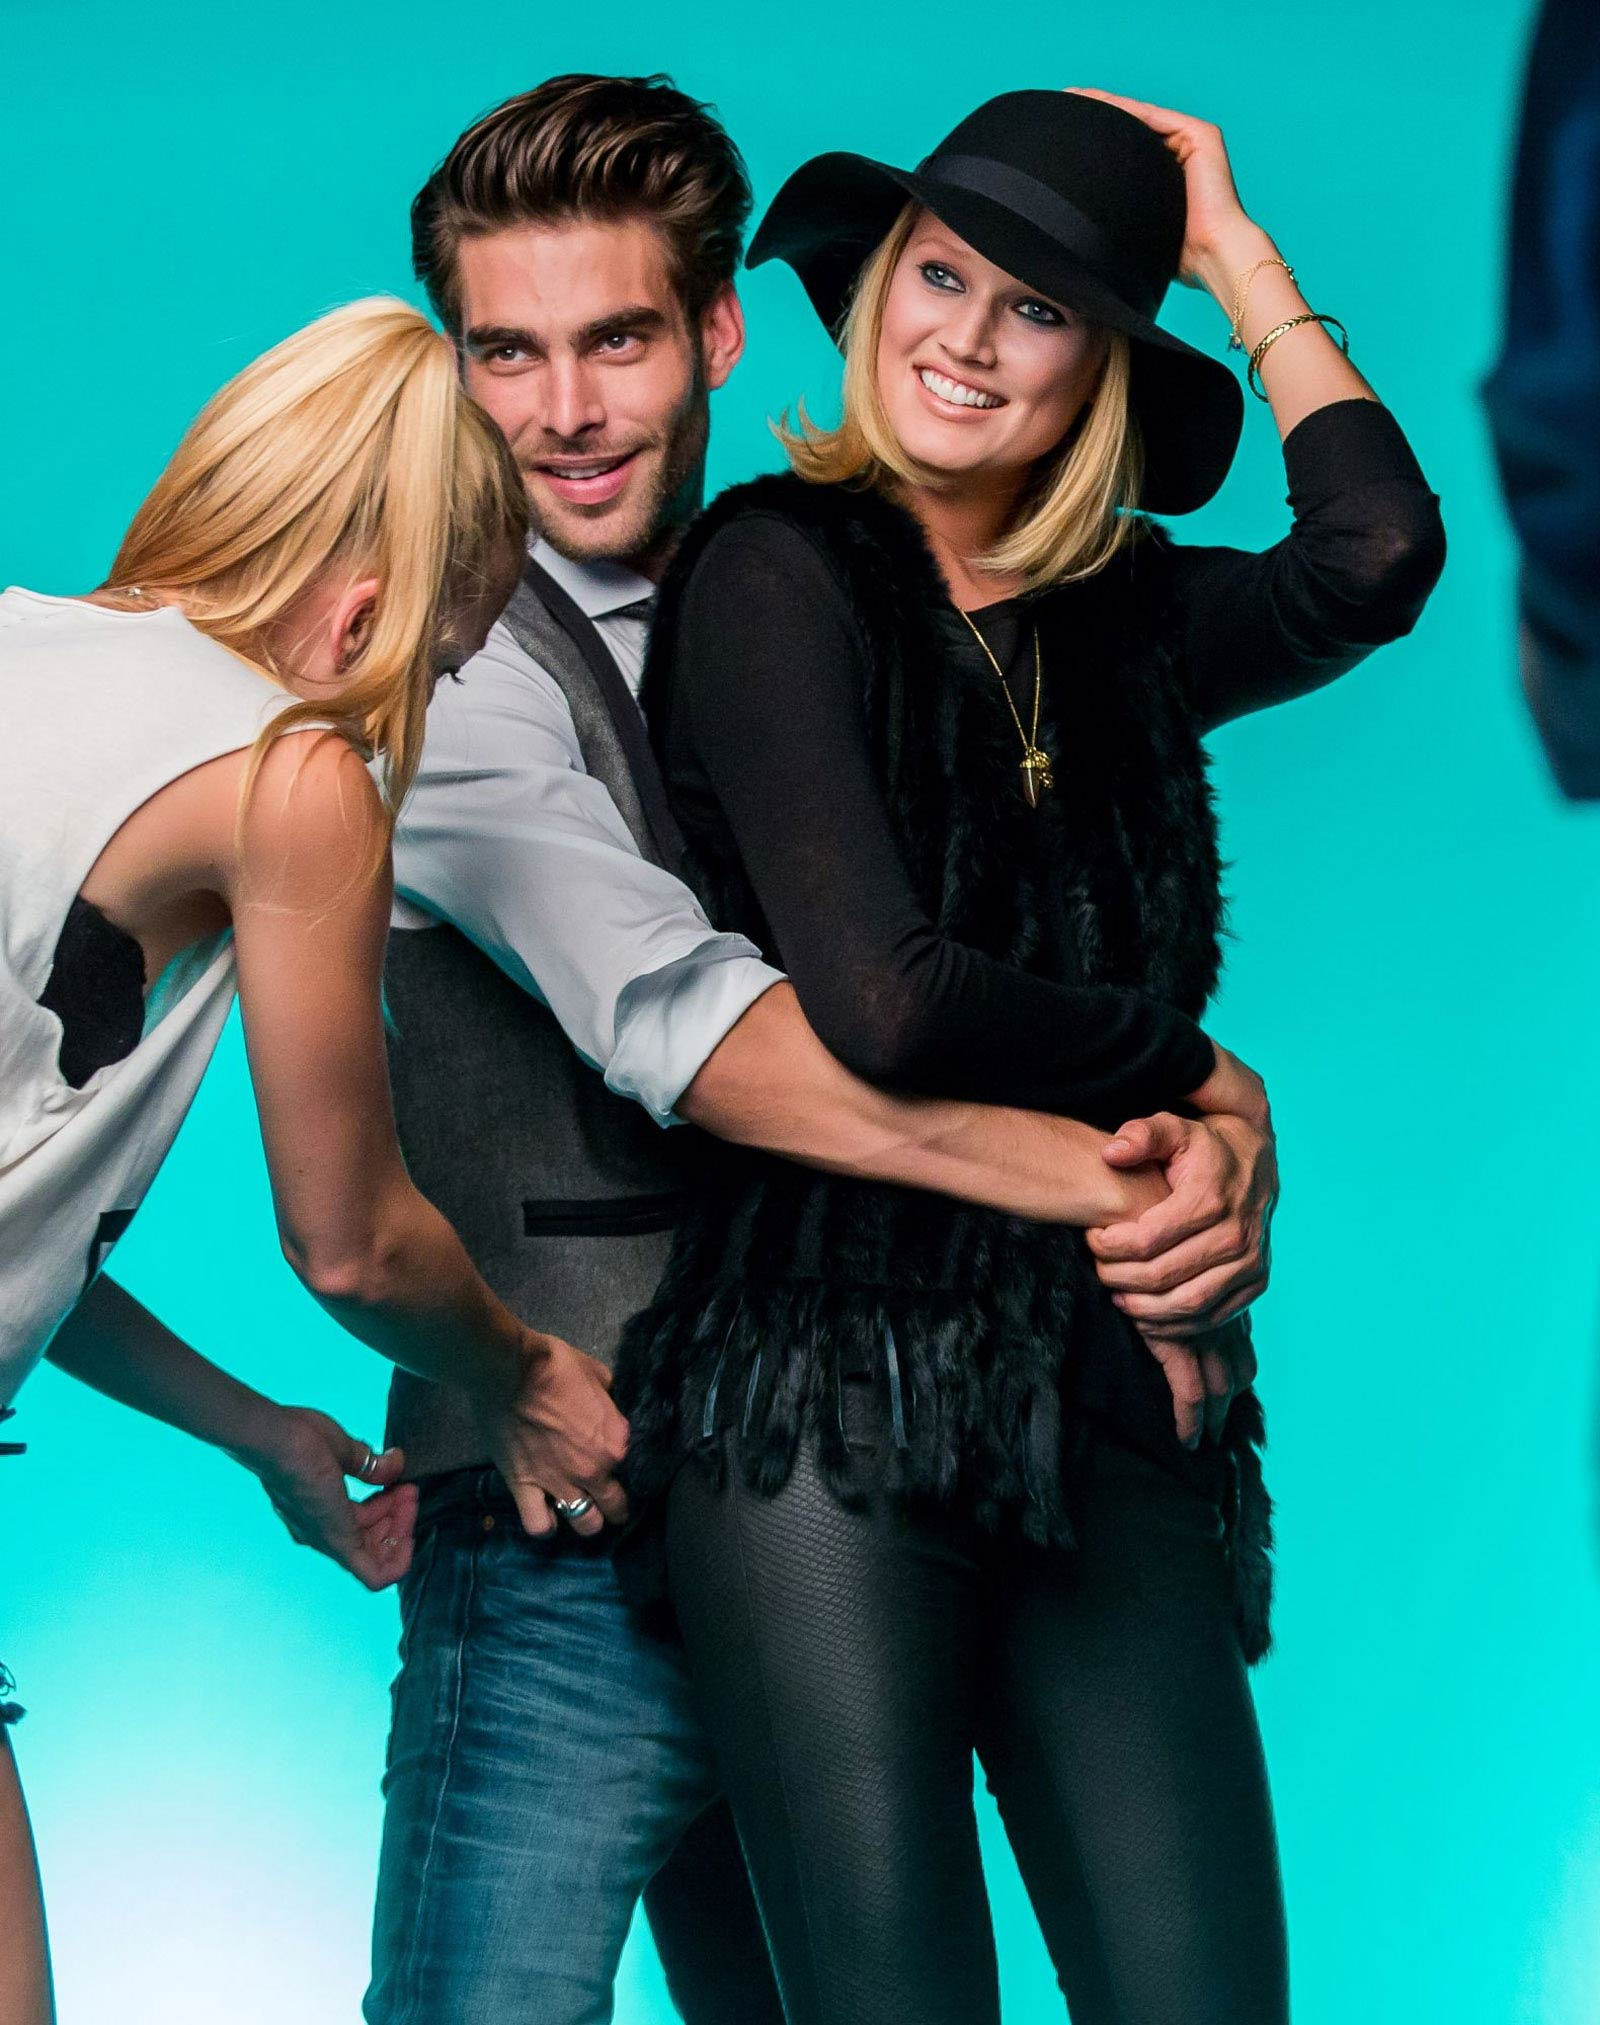 Toni Garrn photoshoot for PKZ Men & Women